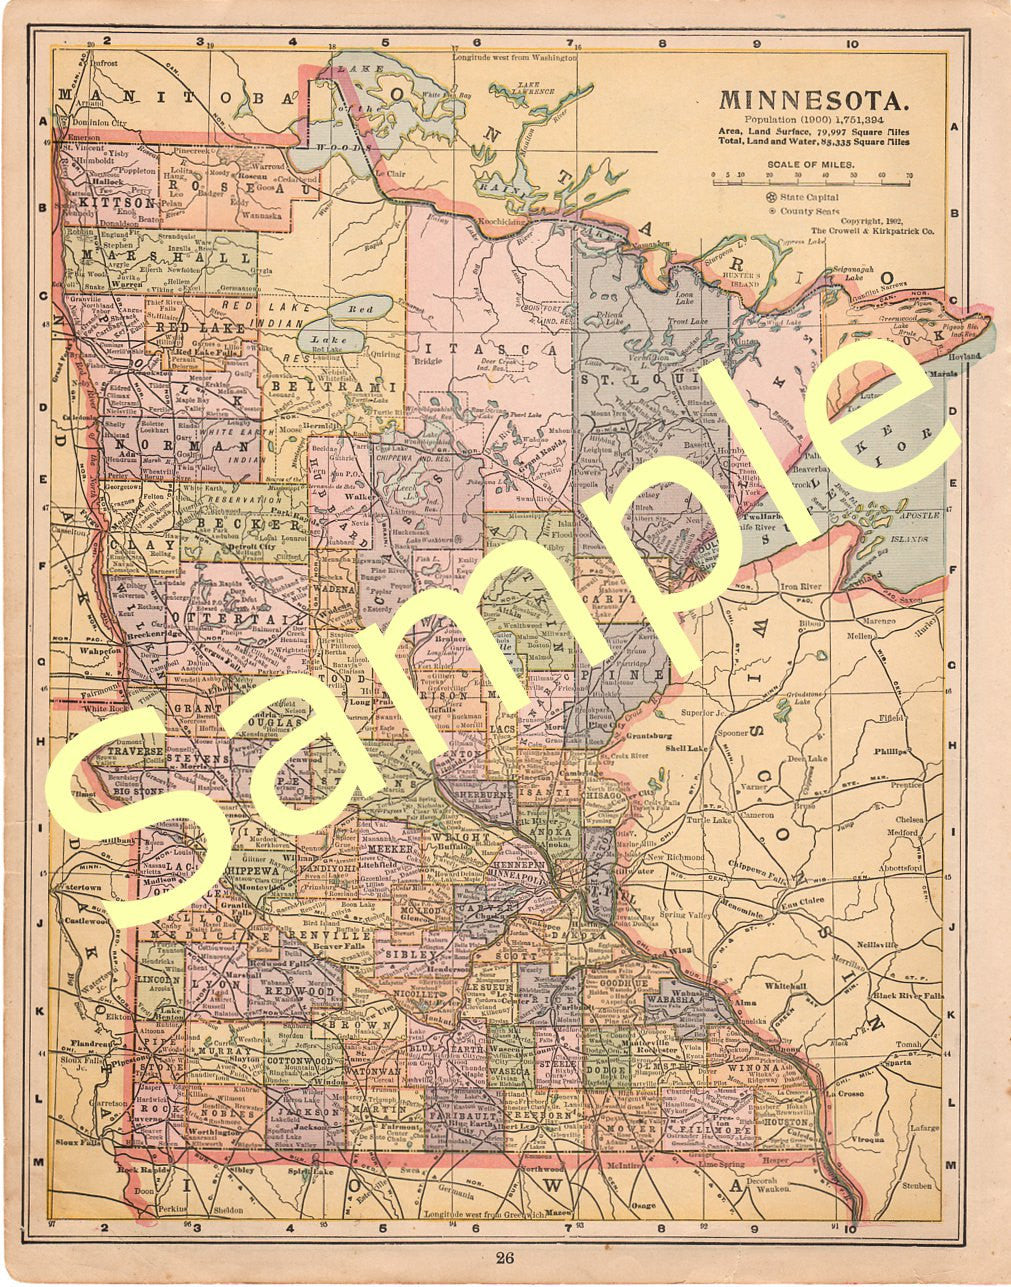 image relating to Printable Map of Houston referred to as Antique 1902 Printable Country Map of Minnesota Displaying Counties Coloration Cartography